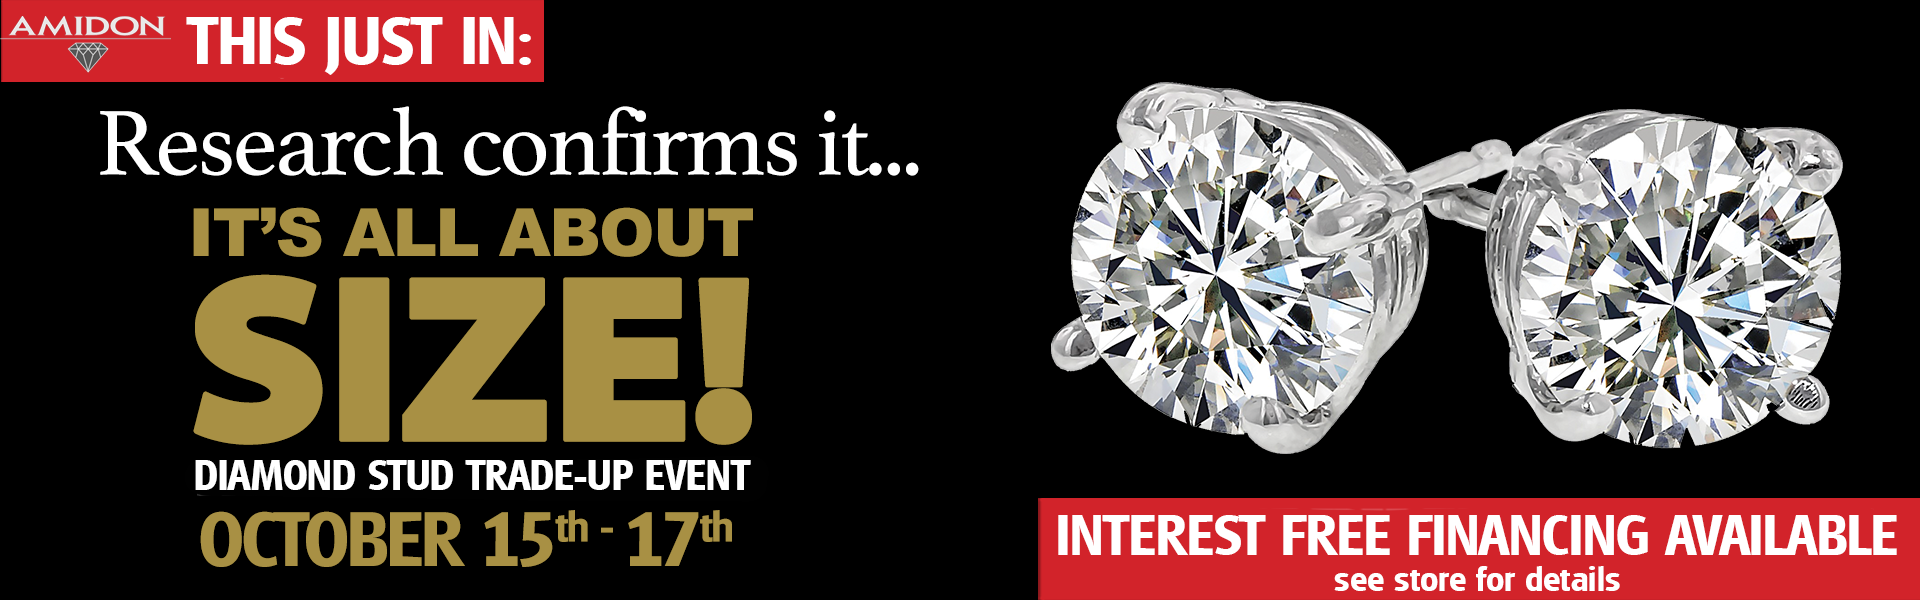 All About Size Stud Event October 15 -17